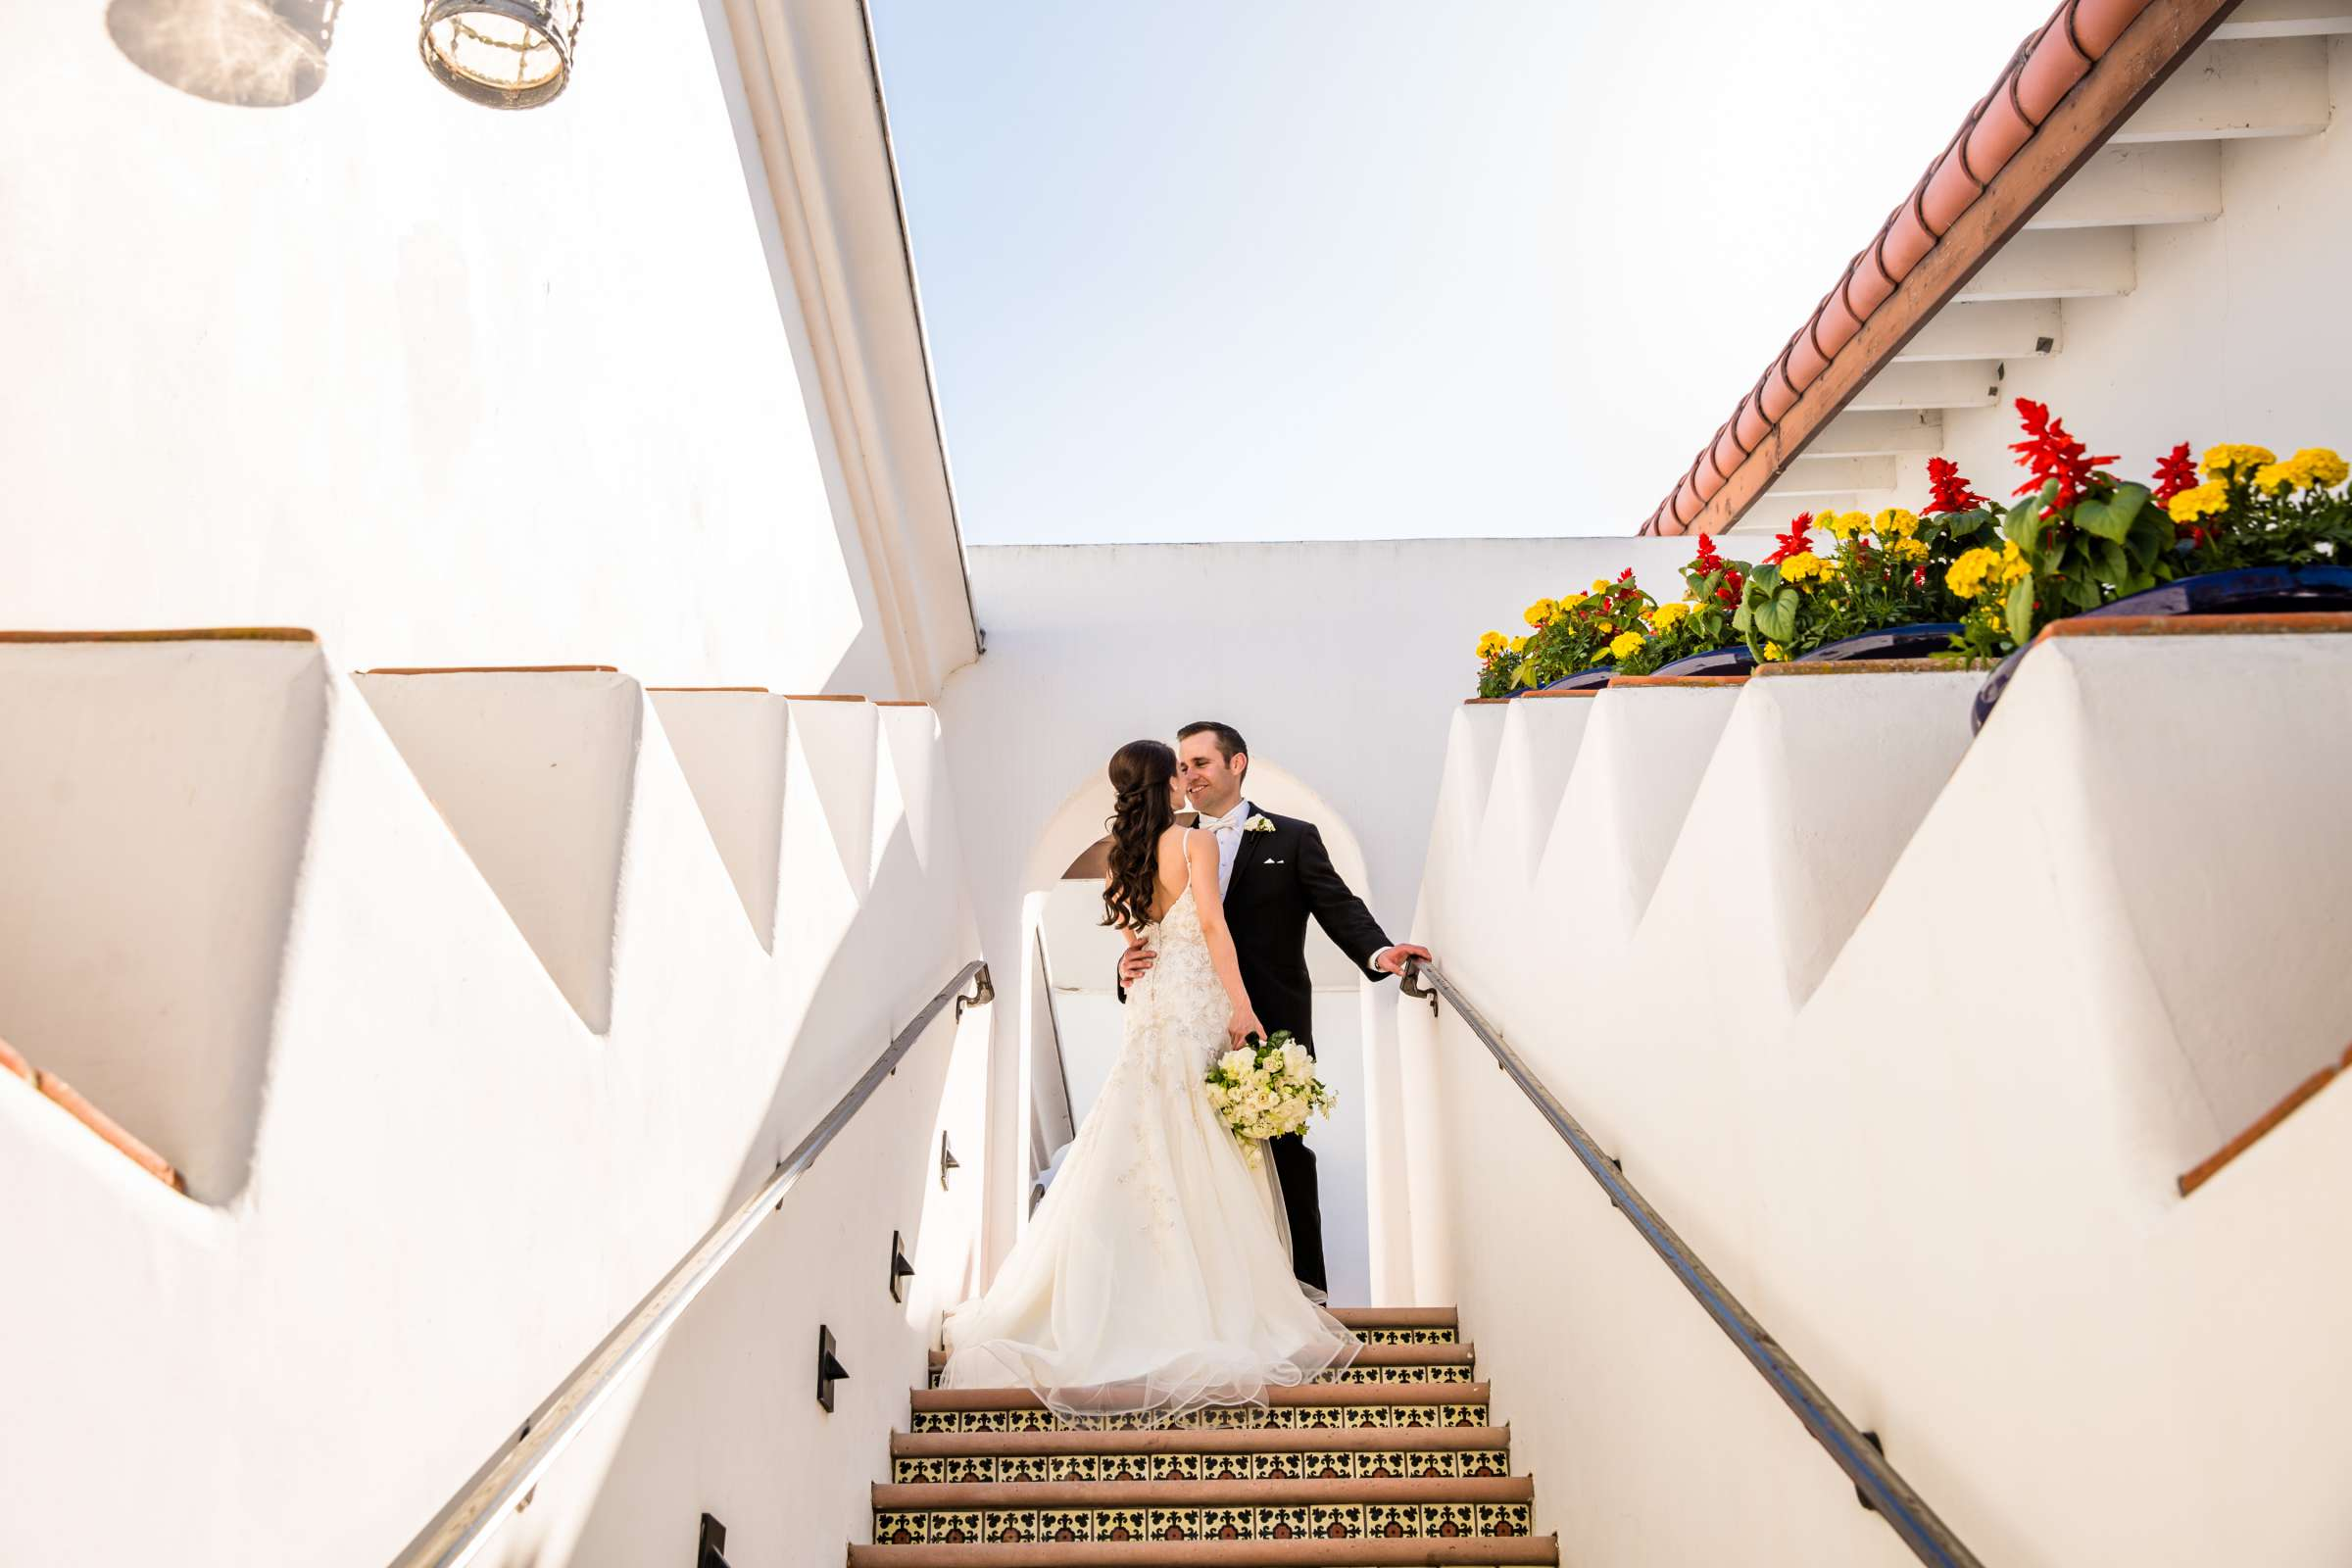 Omni La Costa Resort & Spa Wedding coordinated by EverAfter Events, Natalie and Greg Wedding Photo #359383 by True Photography